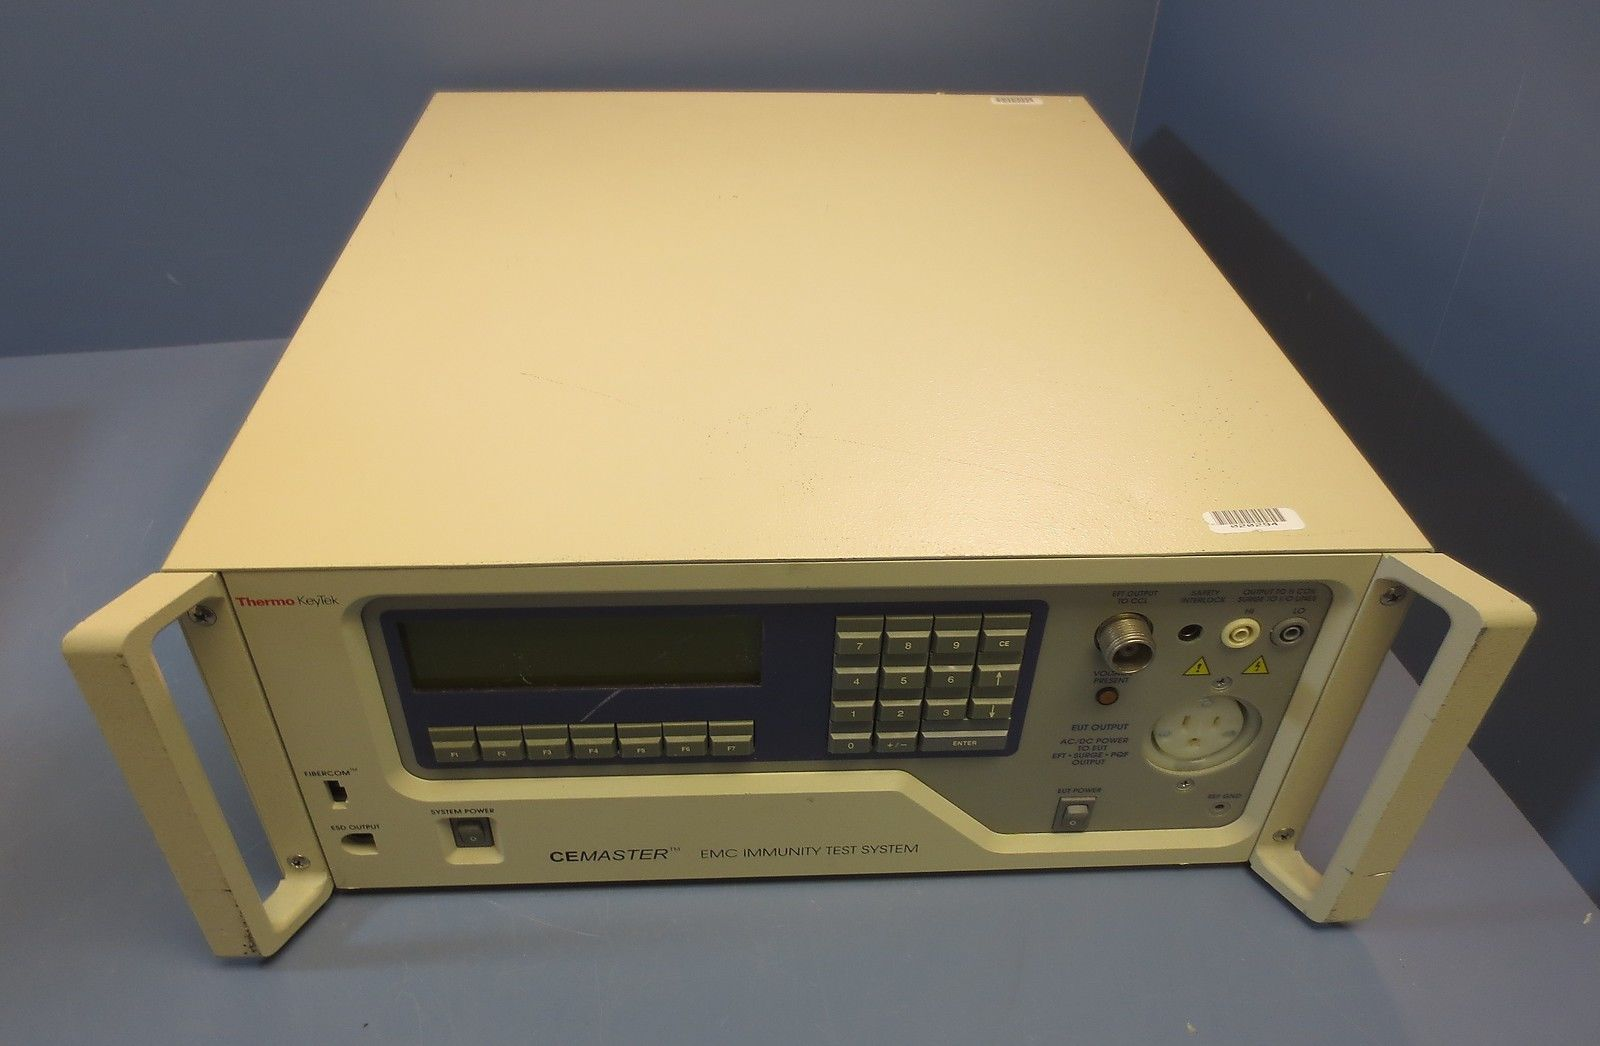 keytek-cemaster-emc-emi-immunity-test-simulator-iec-1000-series-eft-surge-dips-interrupts-for-sale-0.jpg